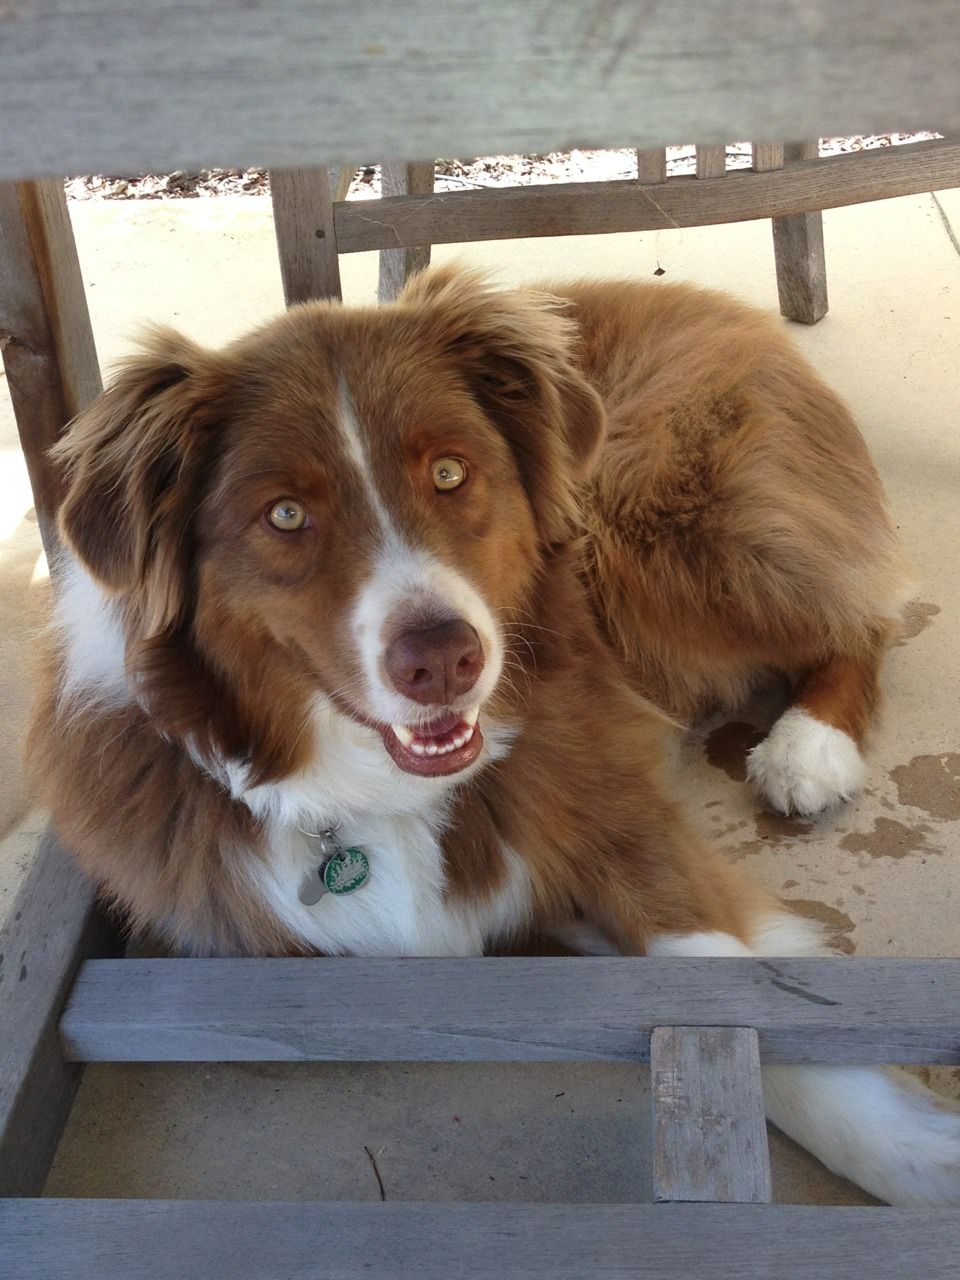 australian shepherd red tri our angel from heaven   lucy  lucy goosy  nana to our boys  love her